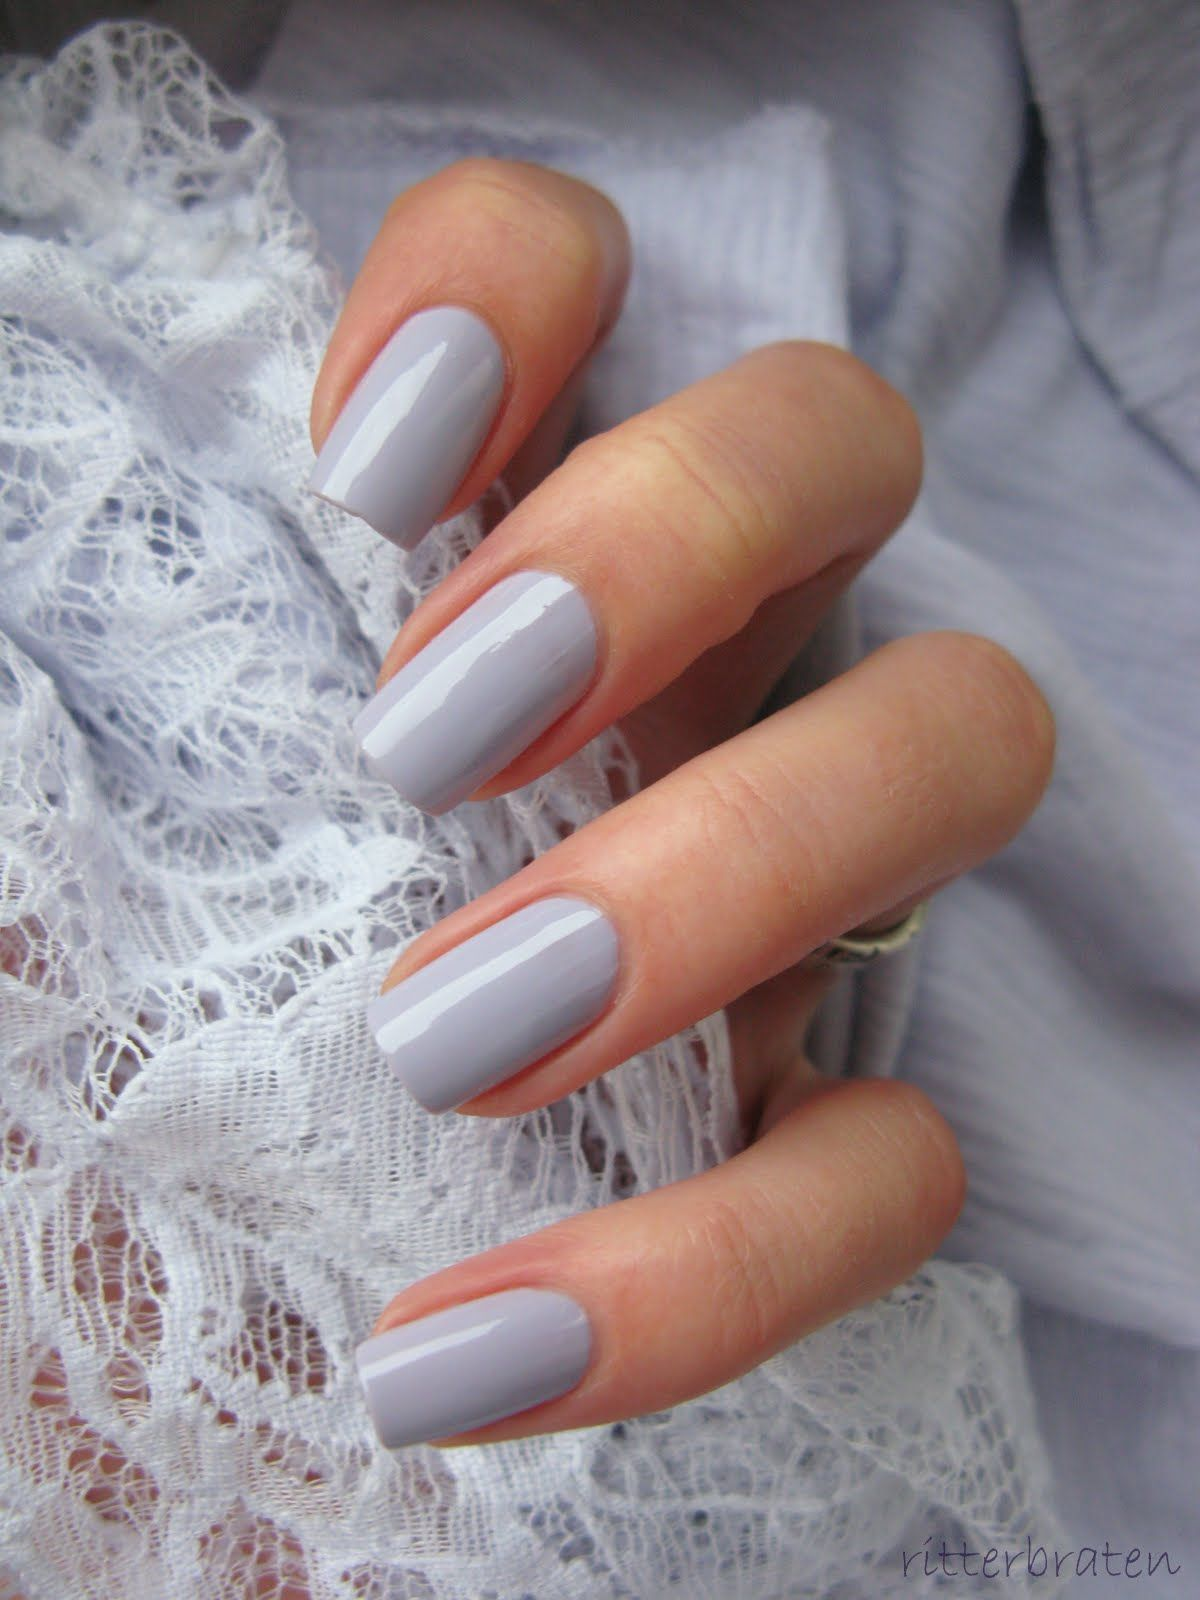 19 Luxury Cute Nail Designs For 9 Year Olds Butter London Muggins Pale Nails Grey Gel Nails Grey Acrylic Nail Sns Nails Colors Nail Color Trends Trendy Nails